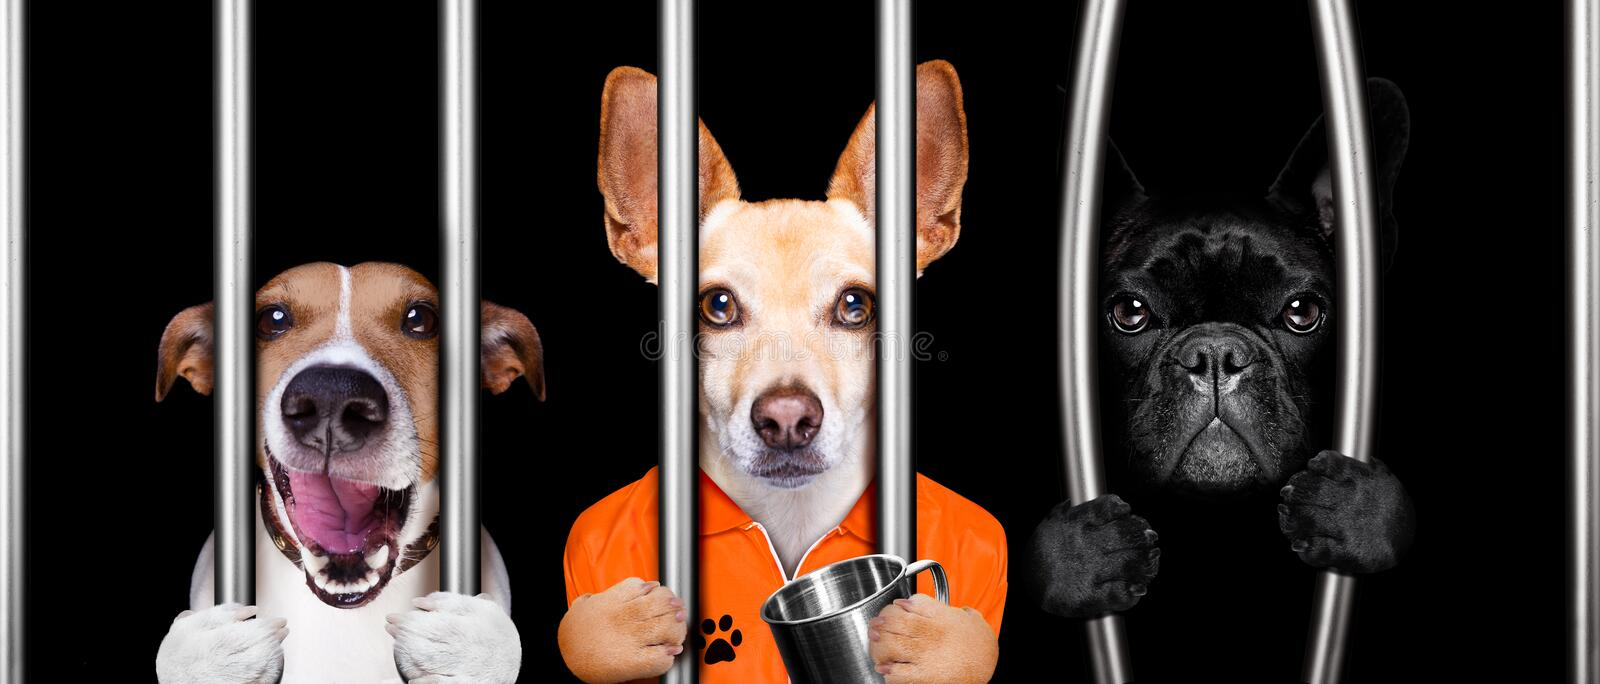 Dogs behind bars in jail prison stock images